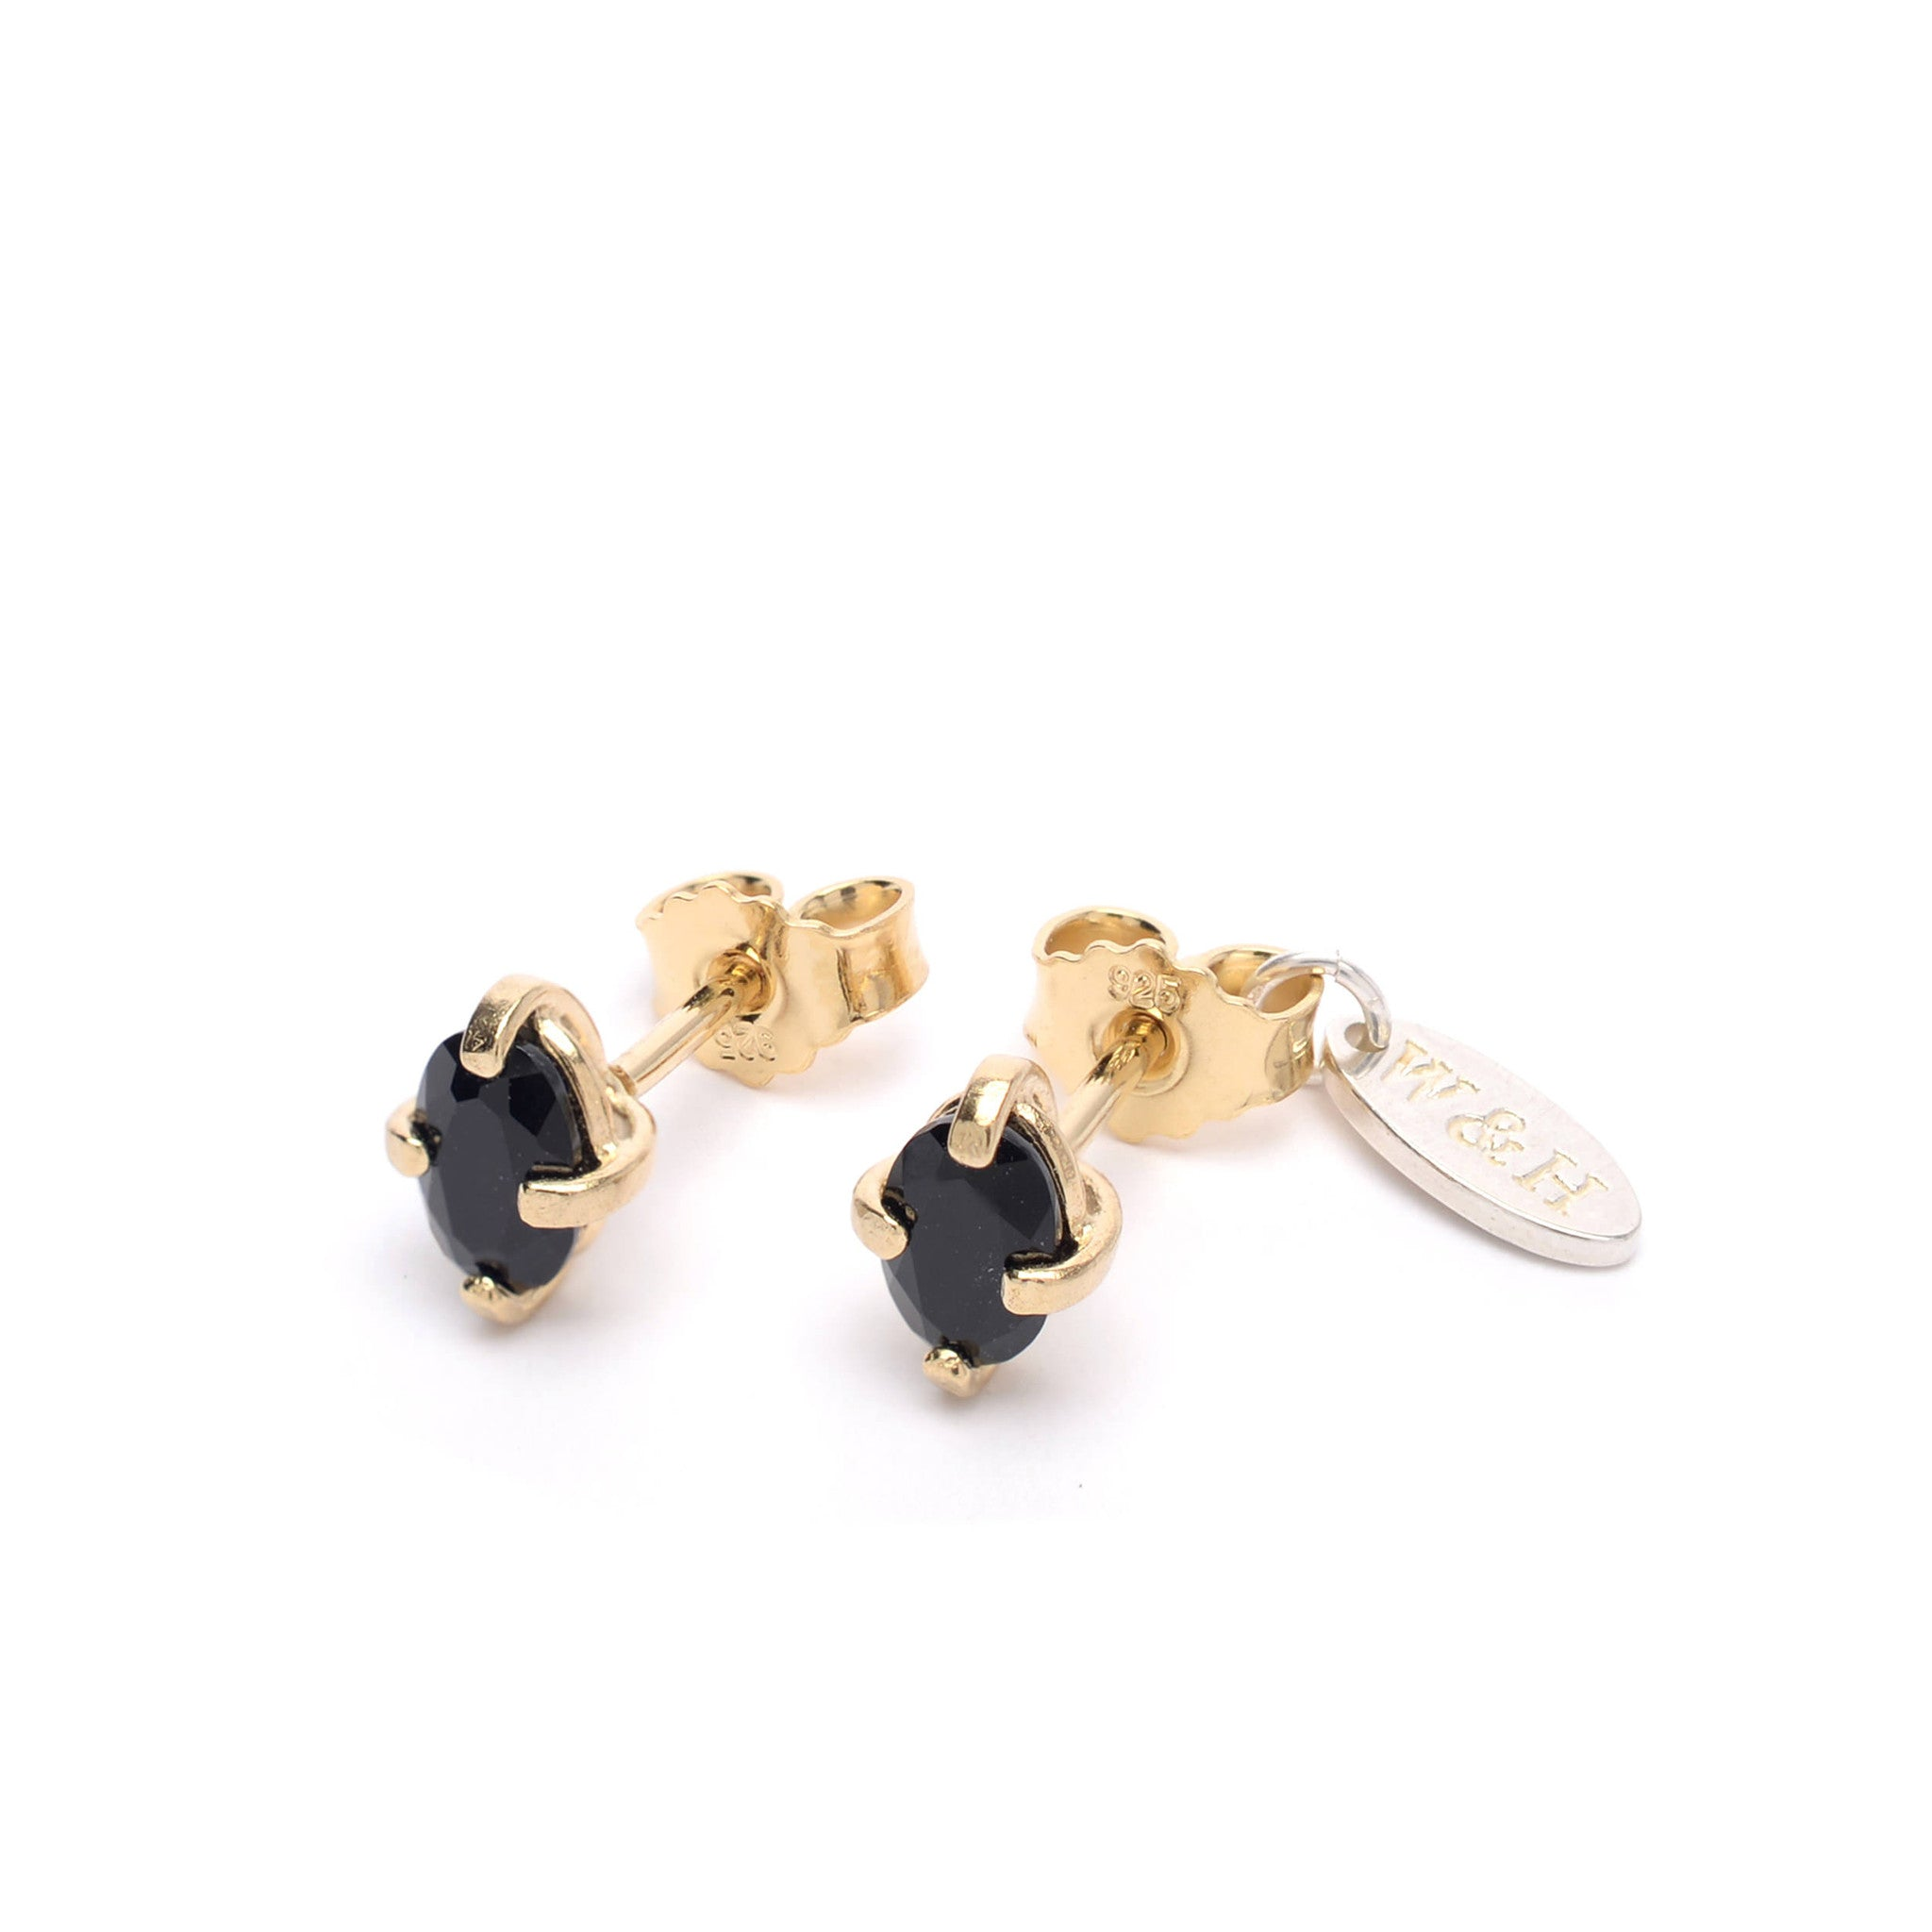 Sterling Silver stud earrings with Onyx